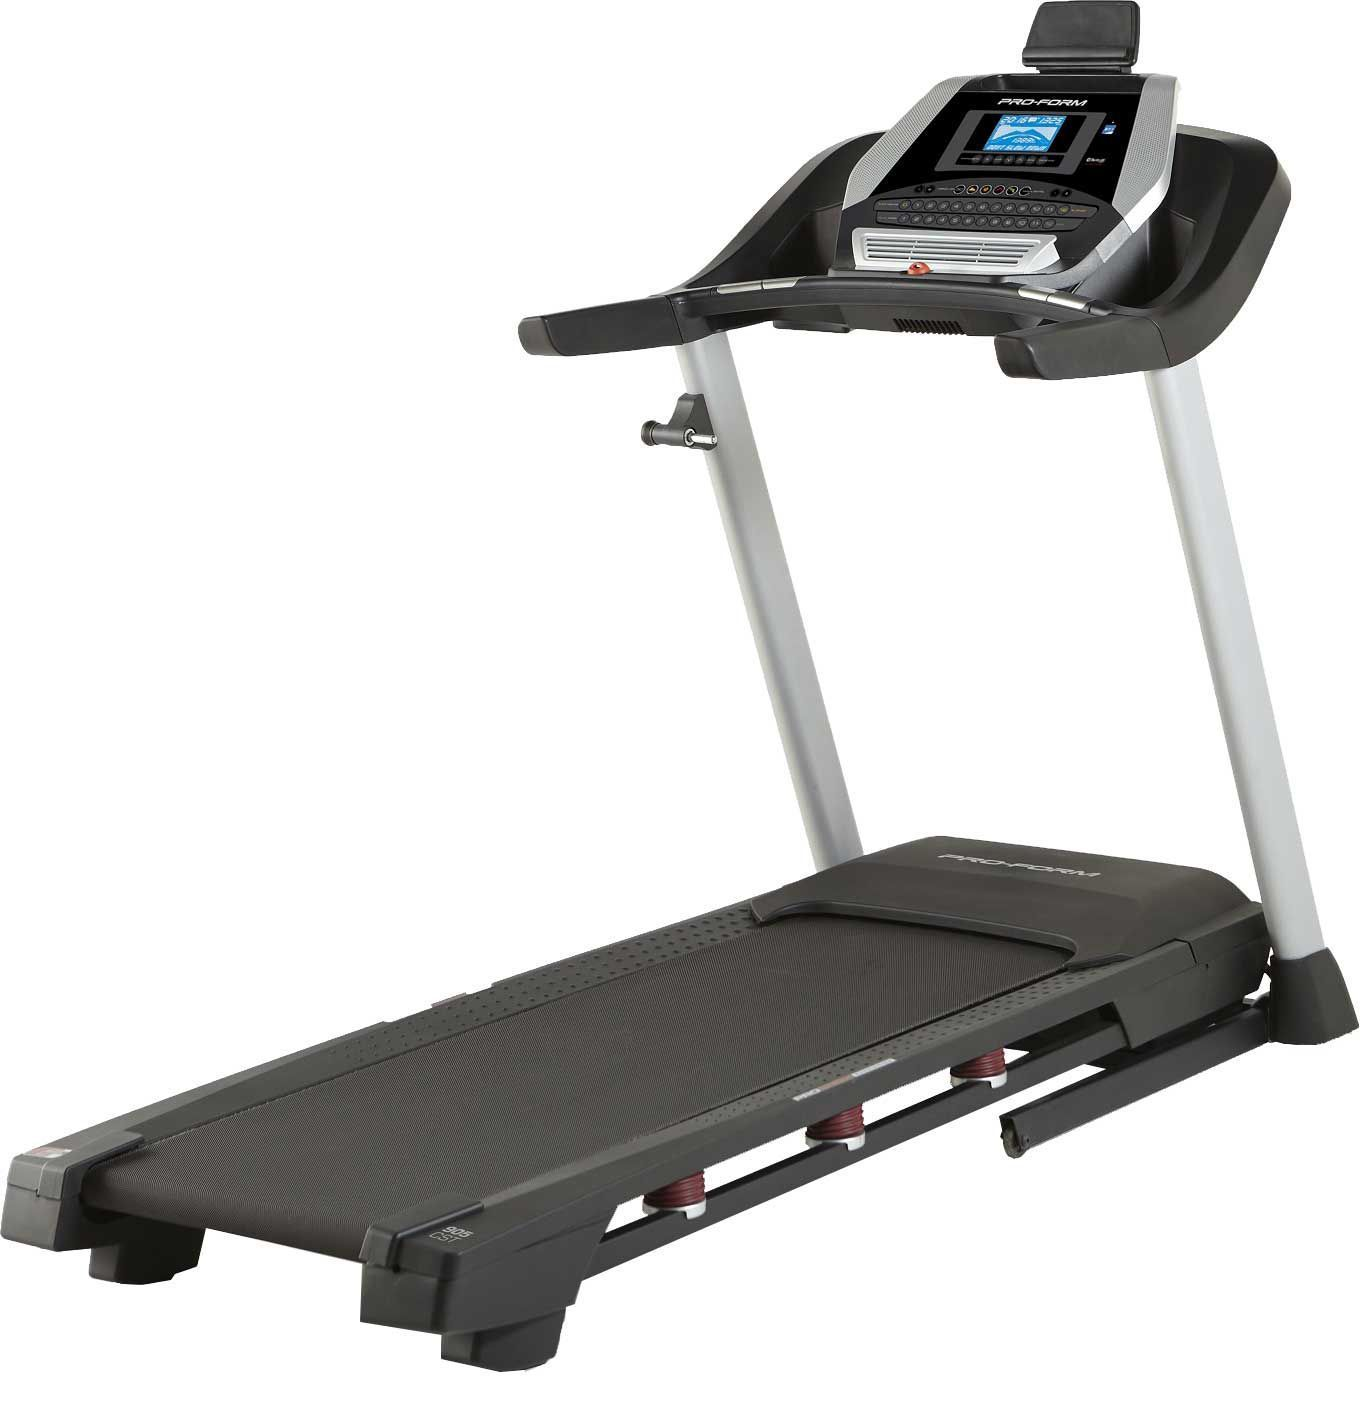 Communication on this topic: The Best Black Friday Deals On Treadmills, the-best-black-friday-deals-on-treadmills/